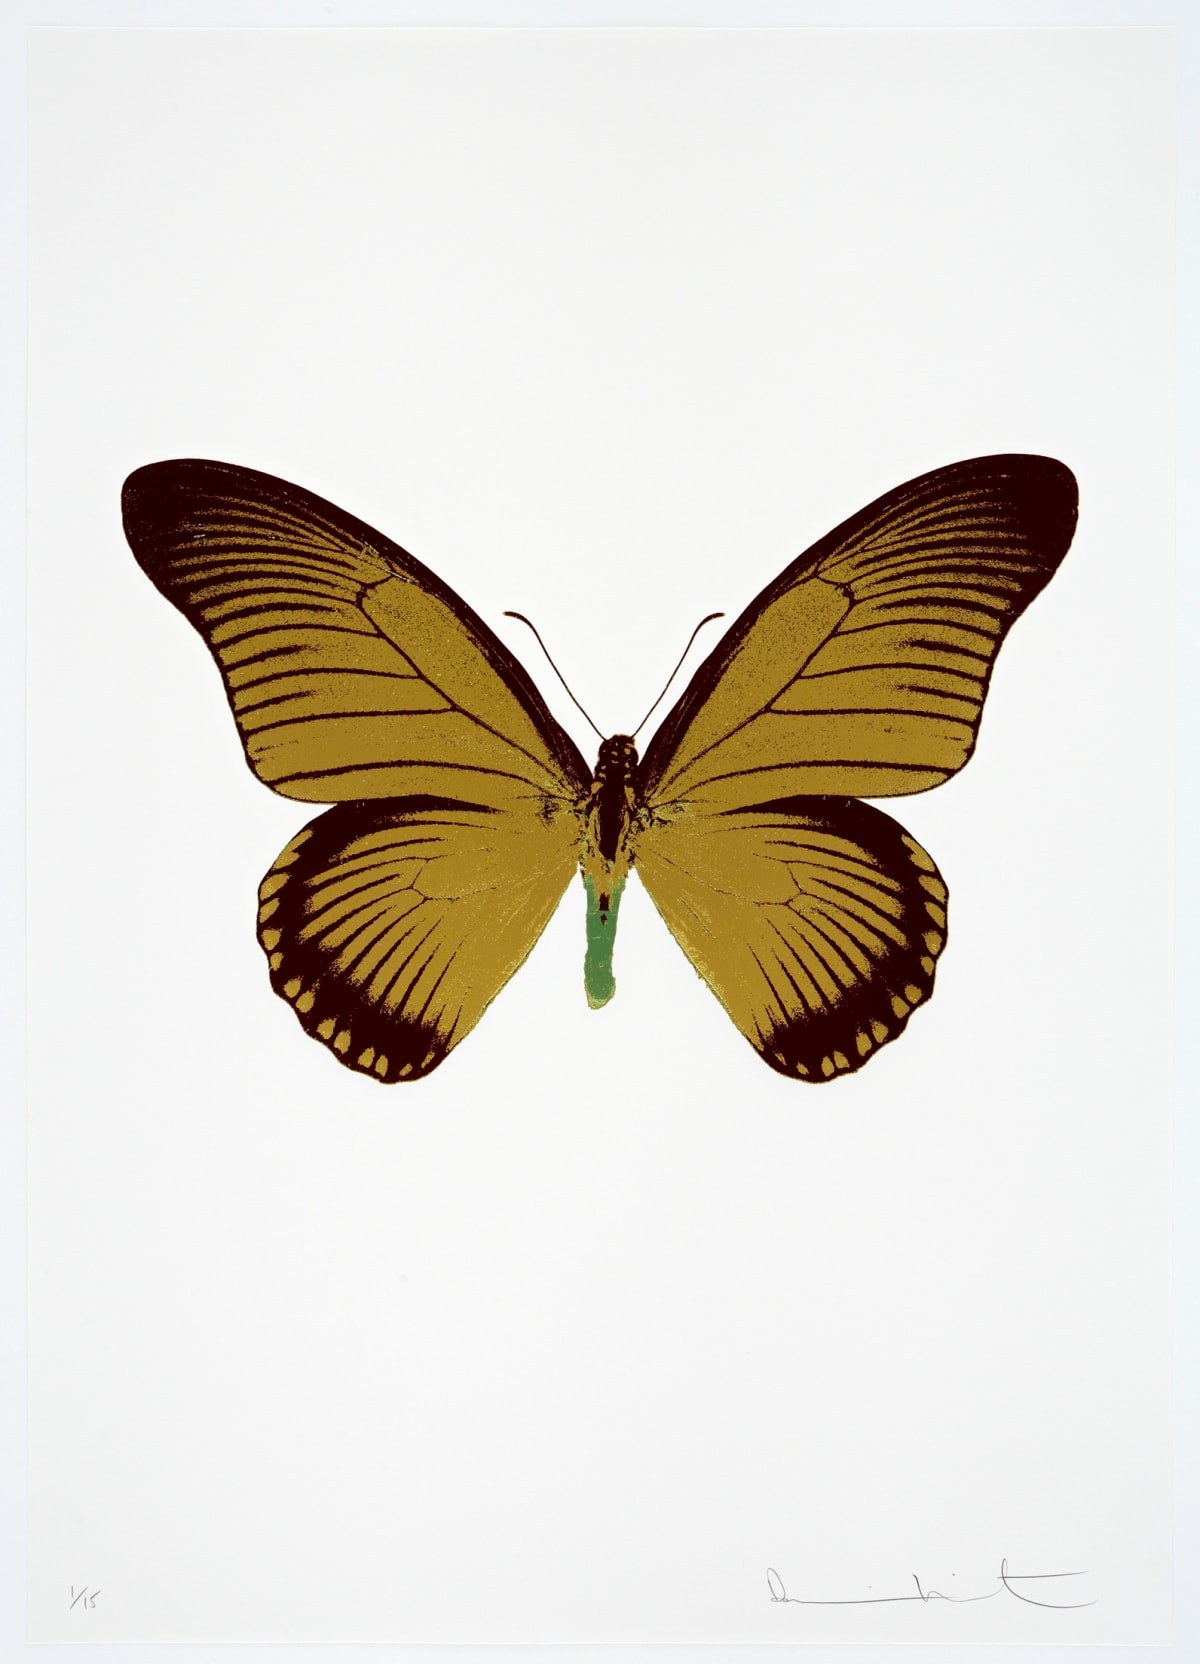 Damien Hirst The Souls IV - Oriental Gold/Burgundy/Leaf Green, 2010 3 colour foil block on 300gsm Arches 88 archival paper. Signed and numbered. Published by Paul Stolper and Other Criteria 72 x 51cm OC8008 / 1418-31 Edition of 15